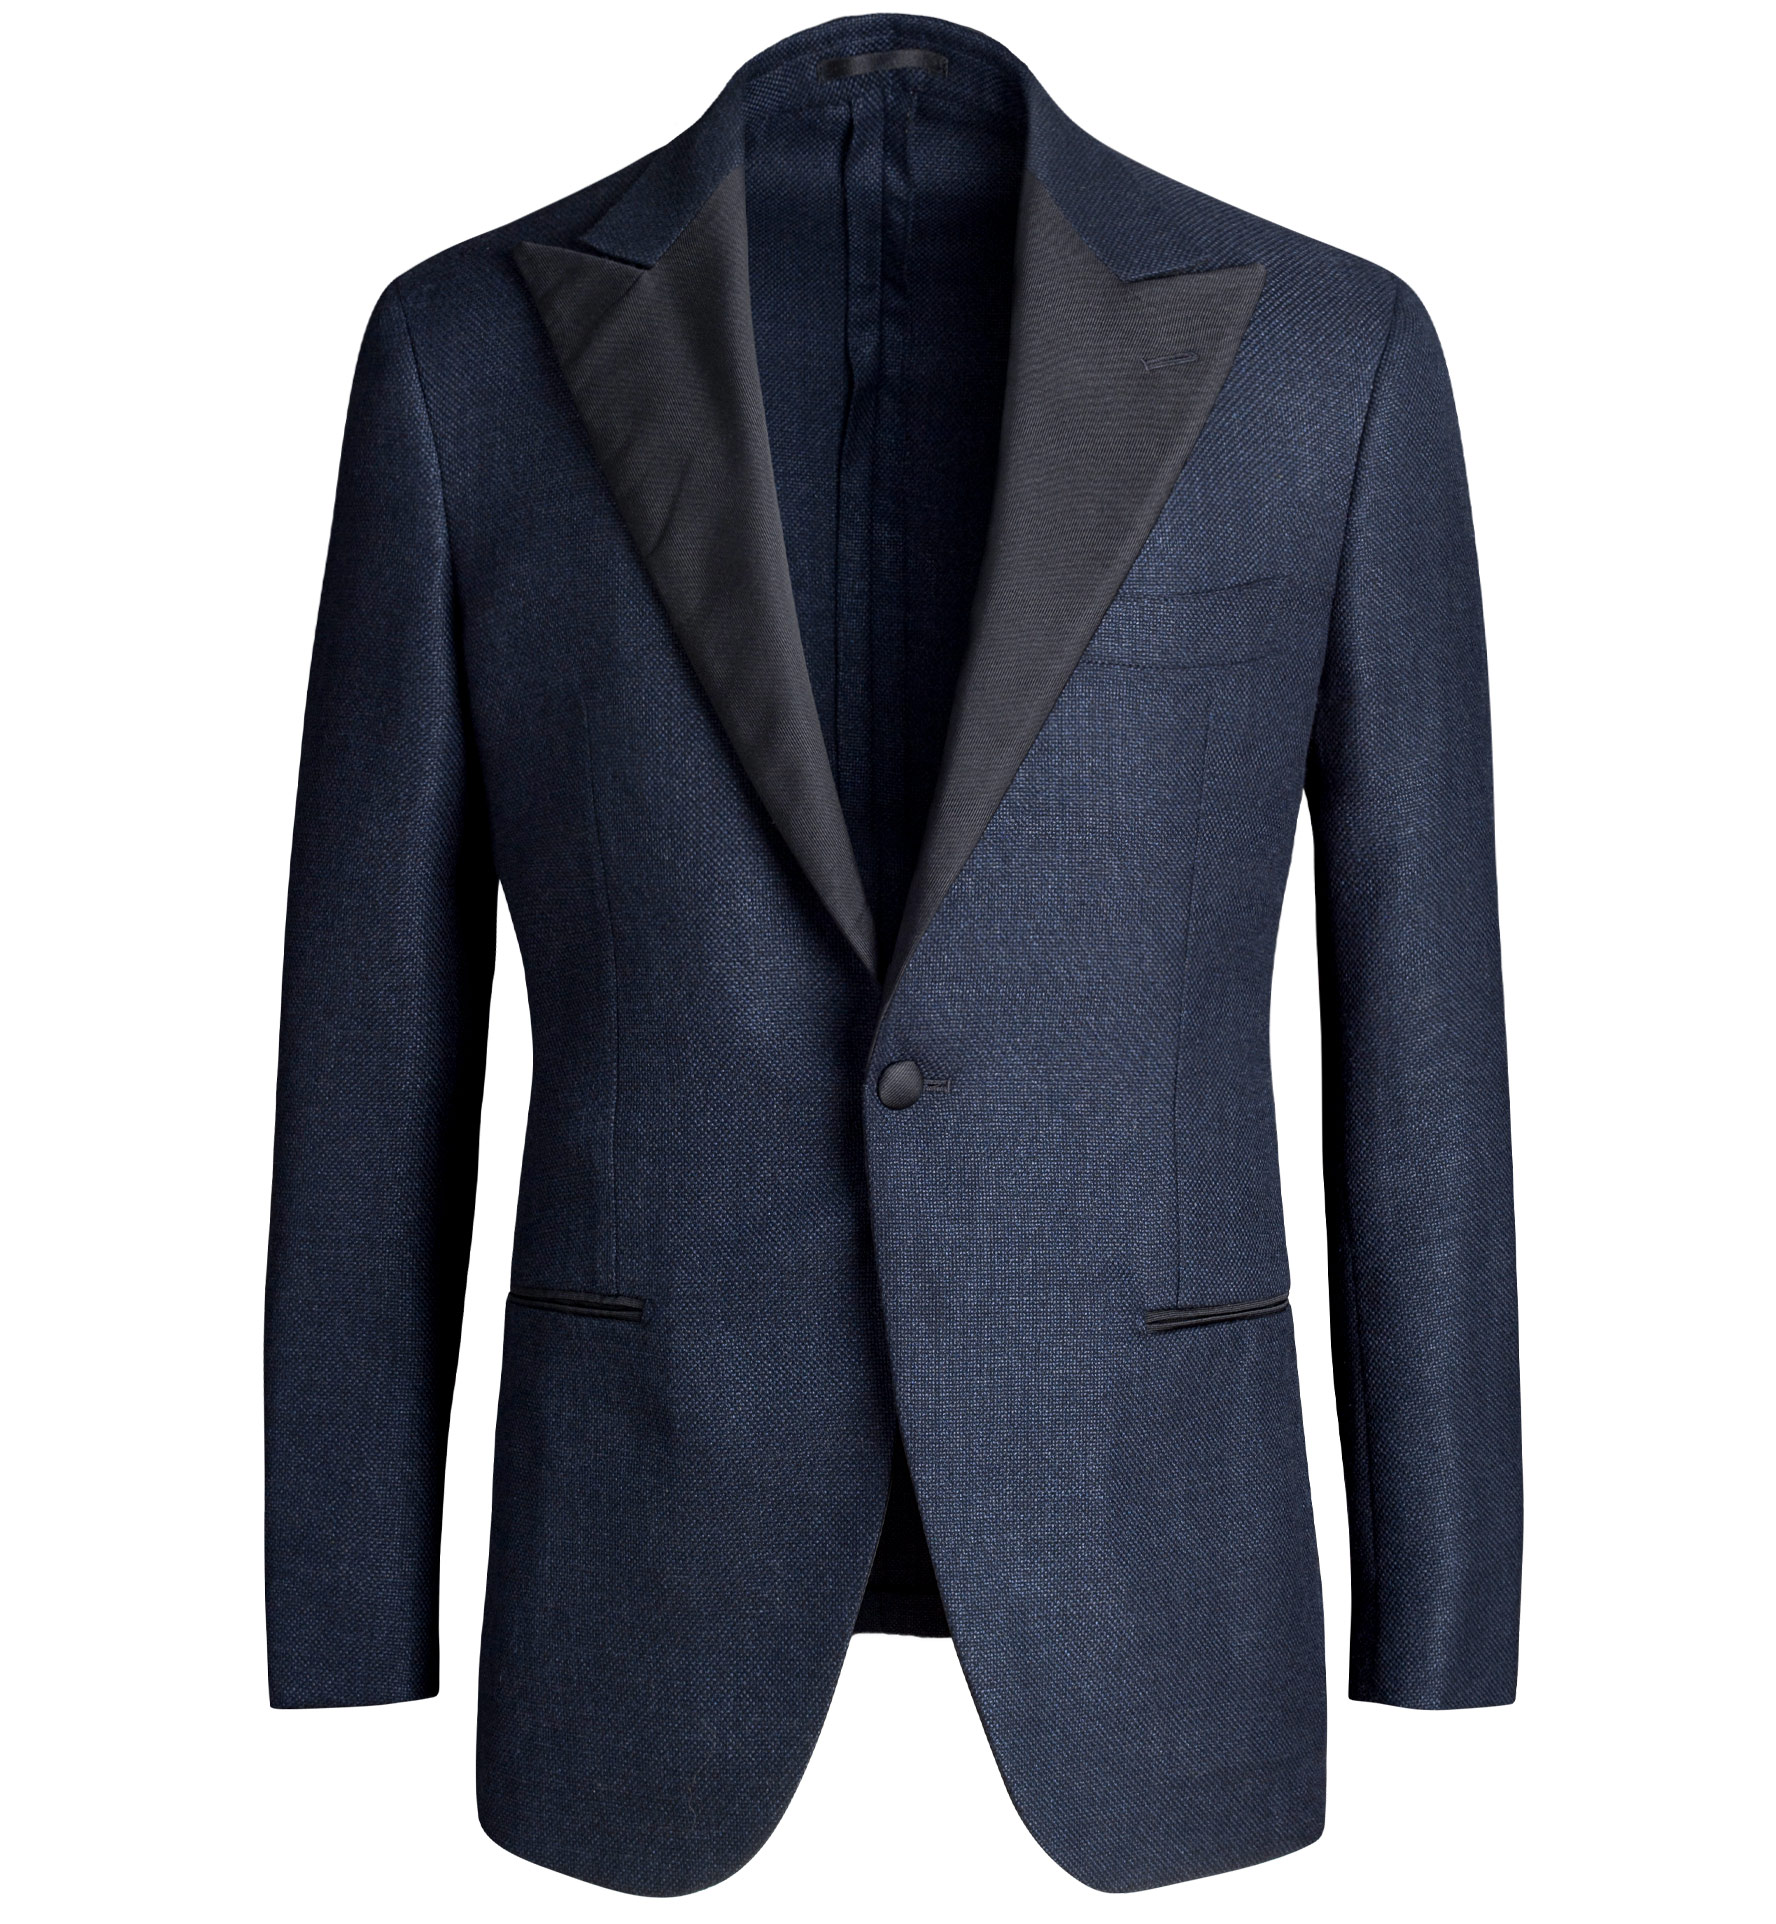 Zoom Image of Mayfair Navy Summer Hopsack Dinner Jacket